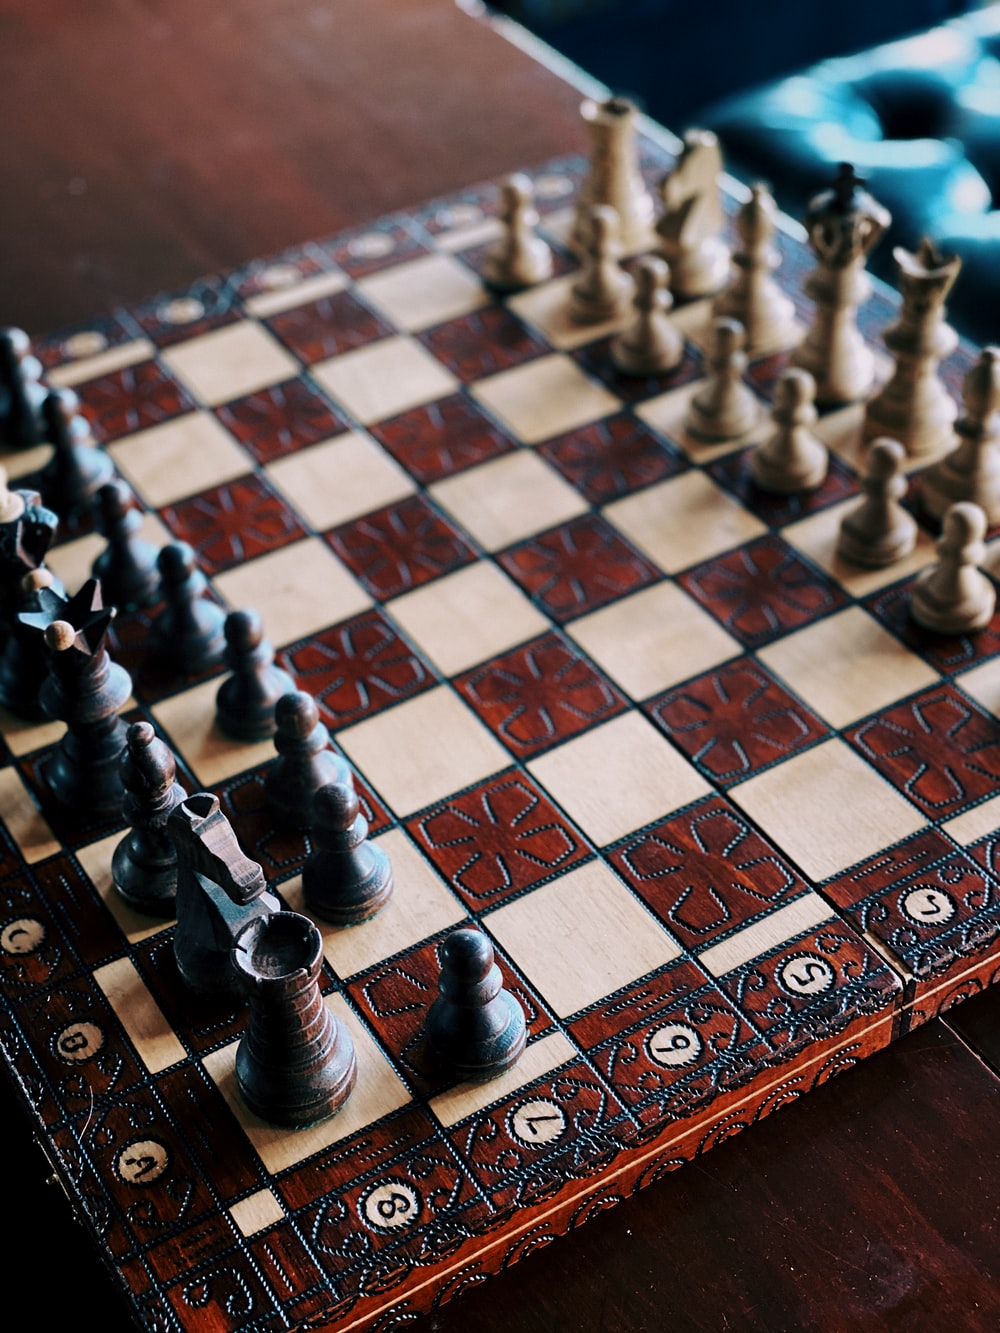 Chess has achieved great success thanks to the Netflix series. Source: Unsplash